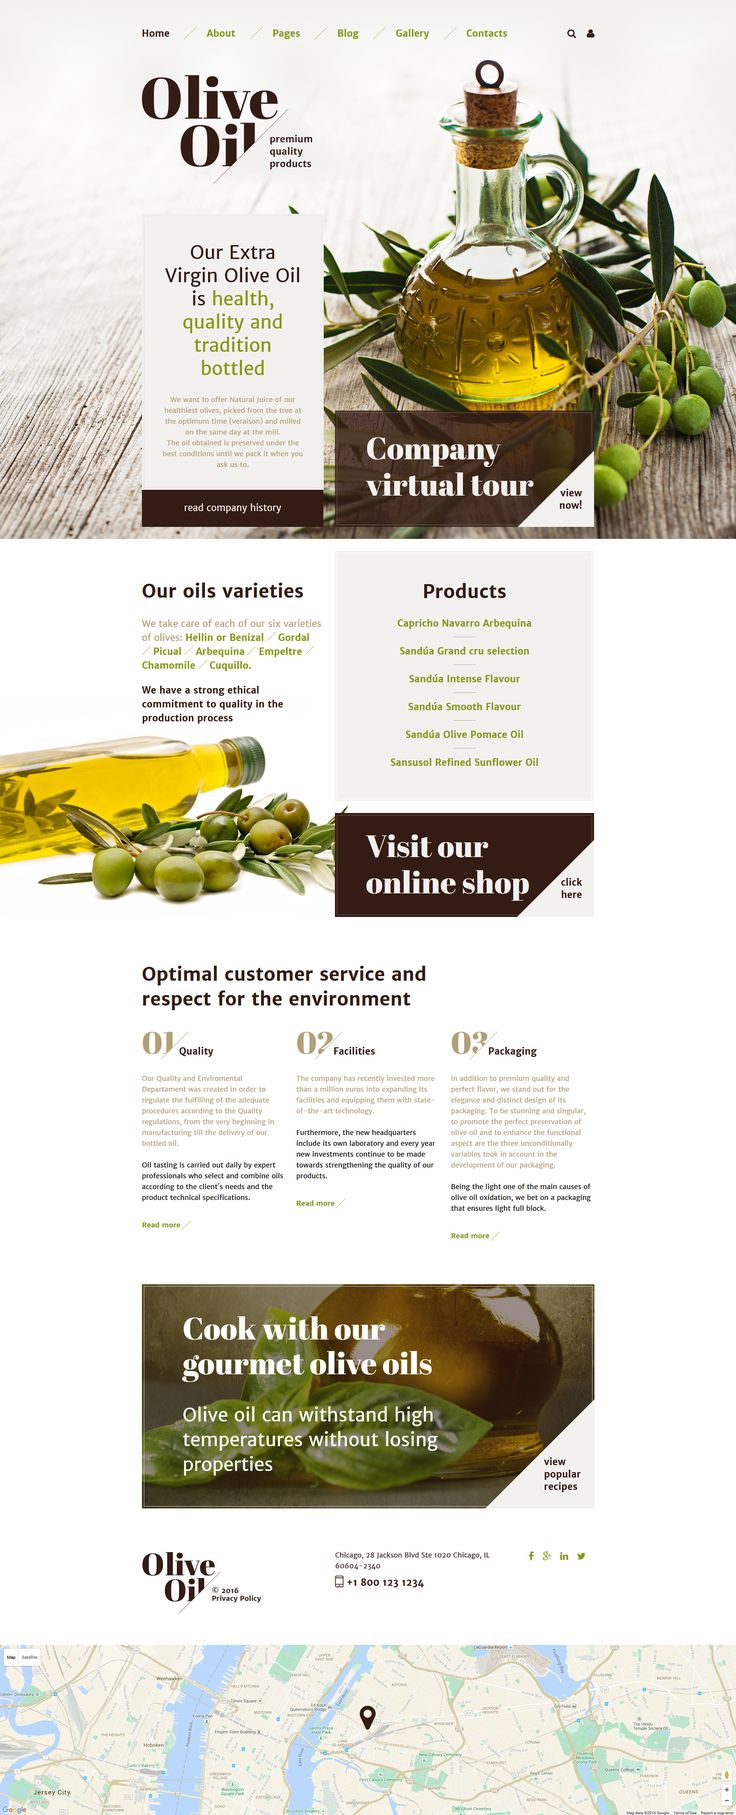 Food And Beverages Joomla Theme http://www.templatemonster.com/joomla-templates/olive-oil-joomla-template-58081.html